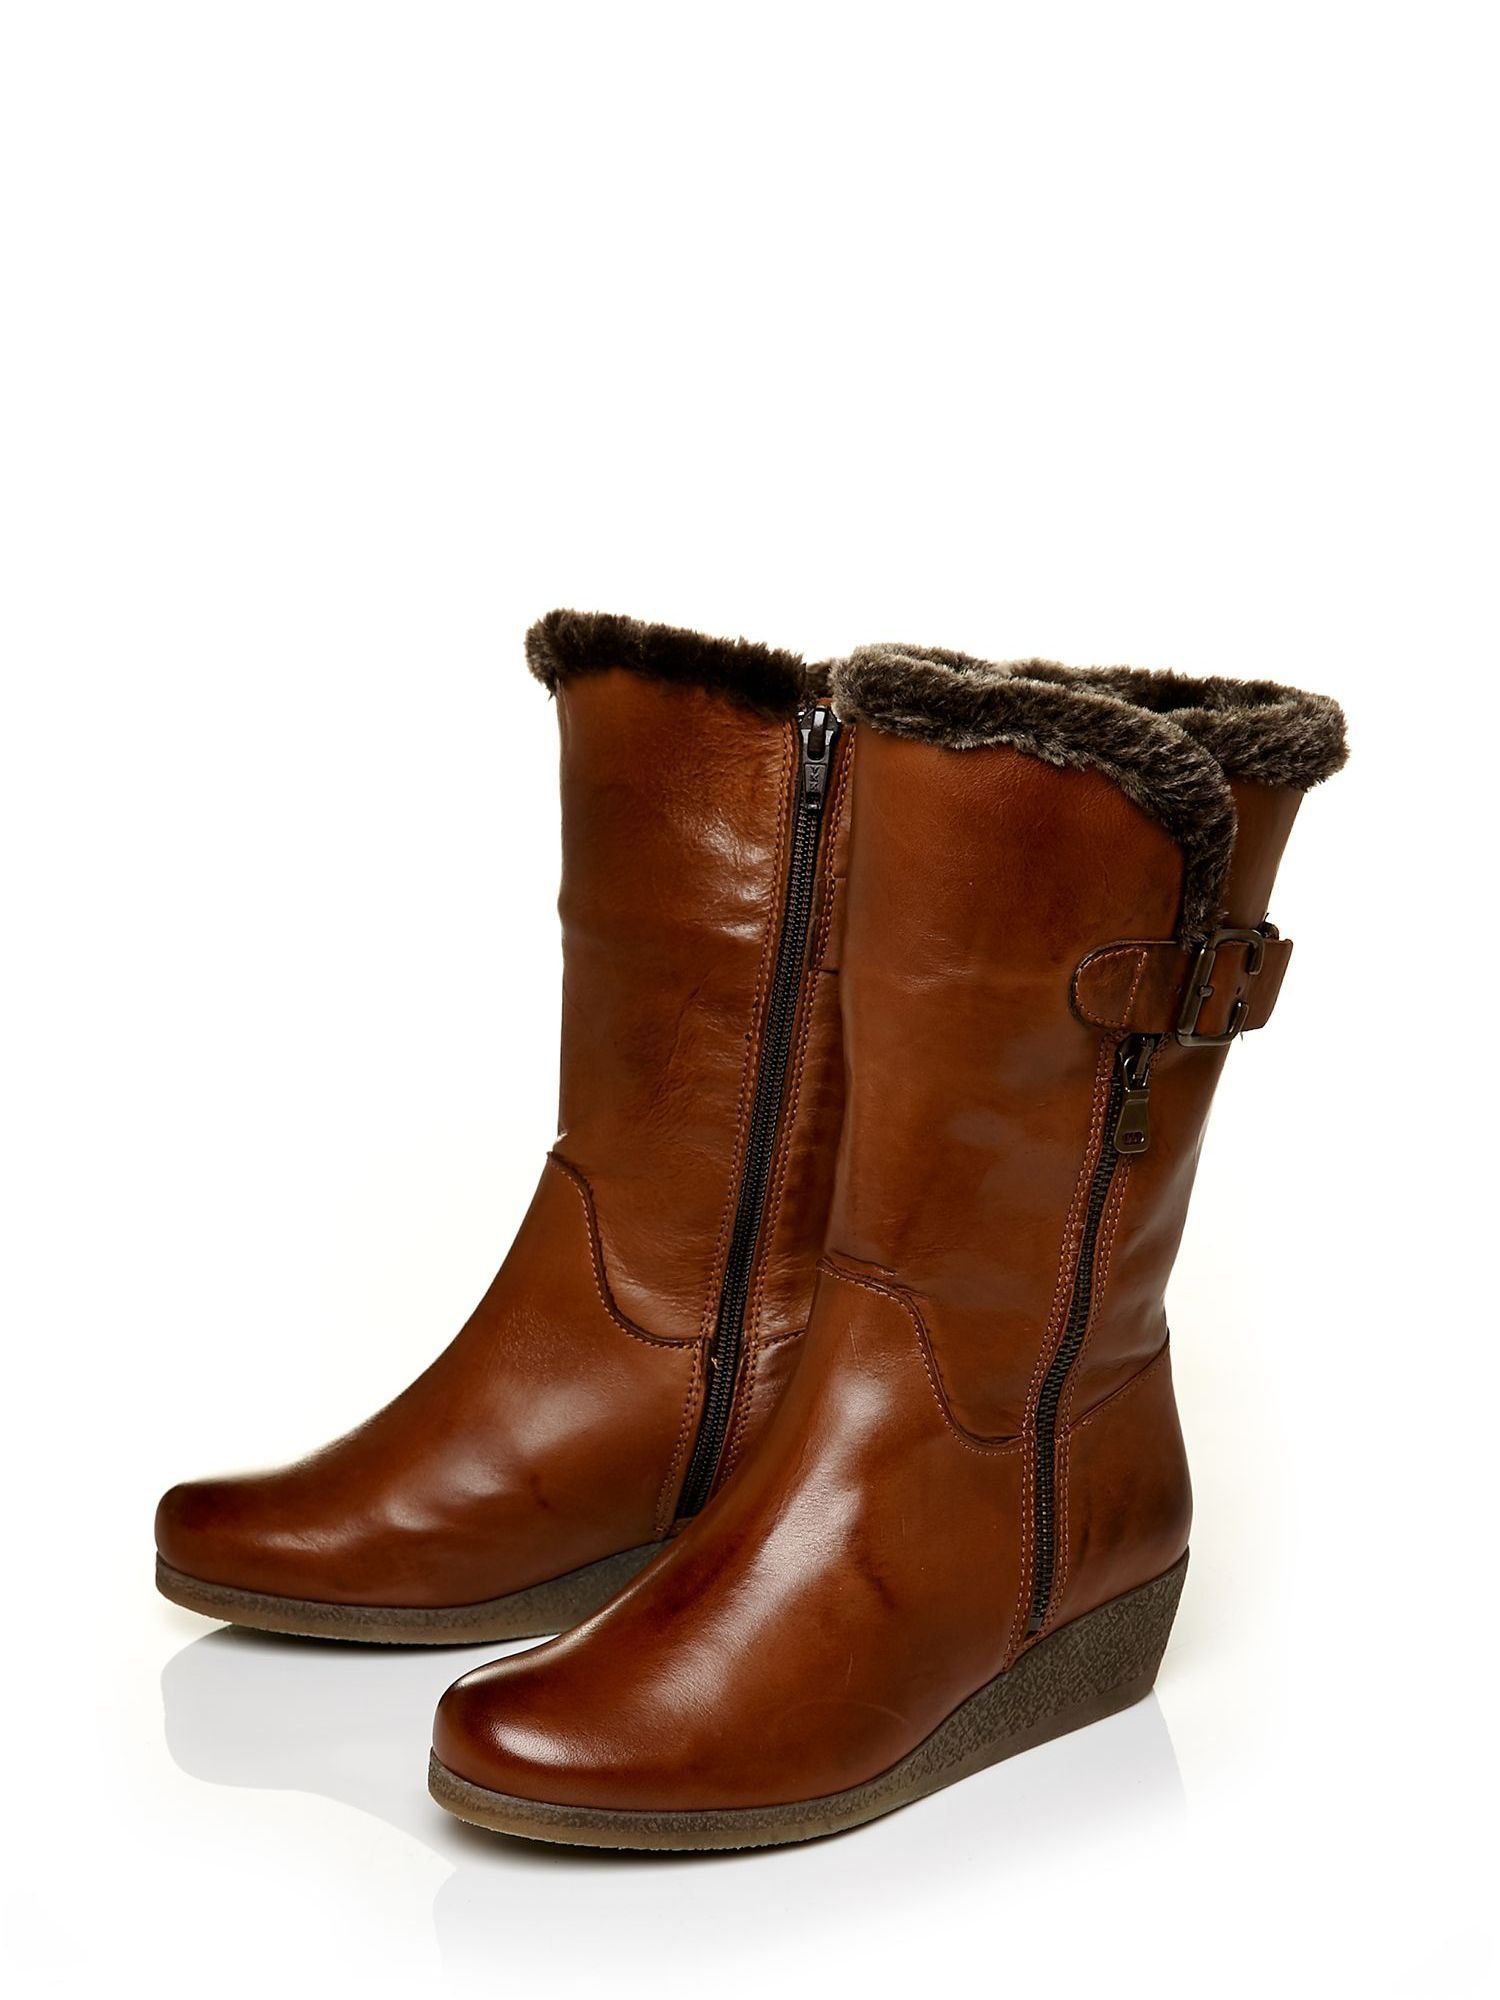 Moda In Pelle Farino Low Casual Short Boots in Tan (Brown)